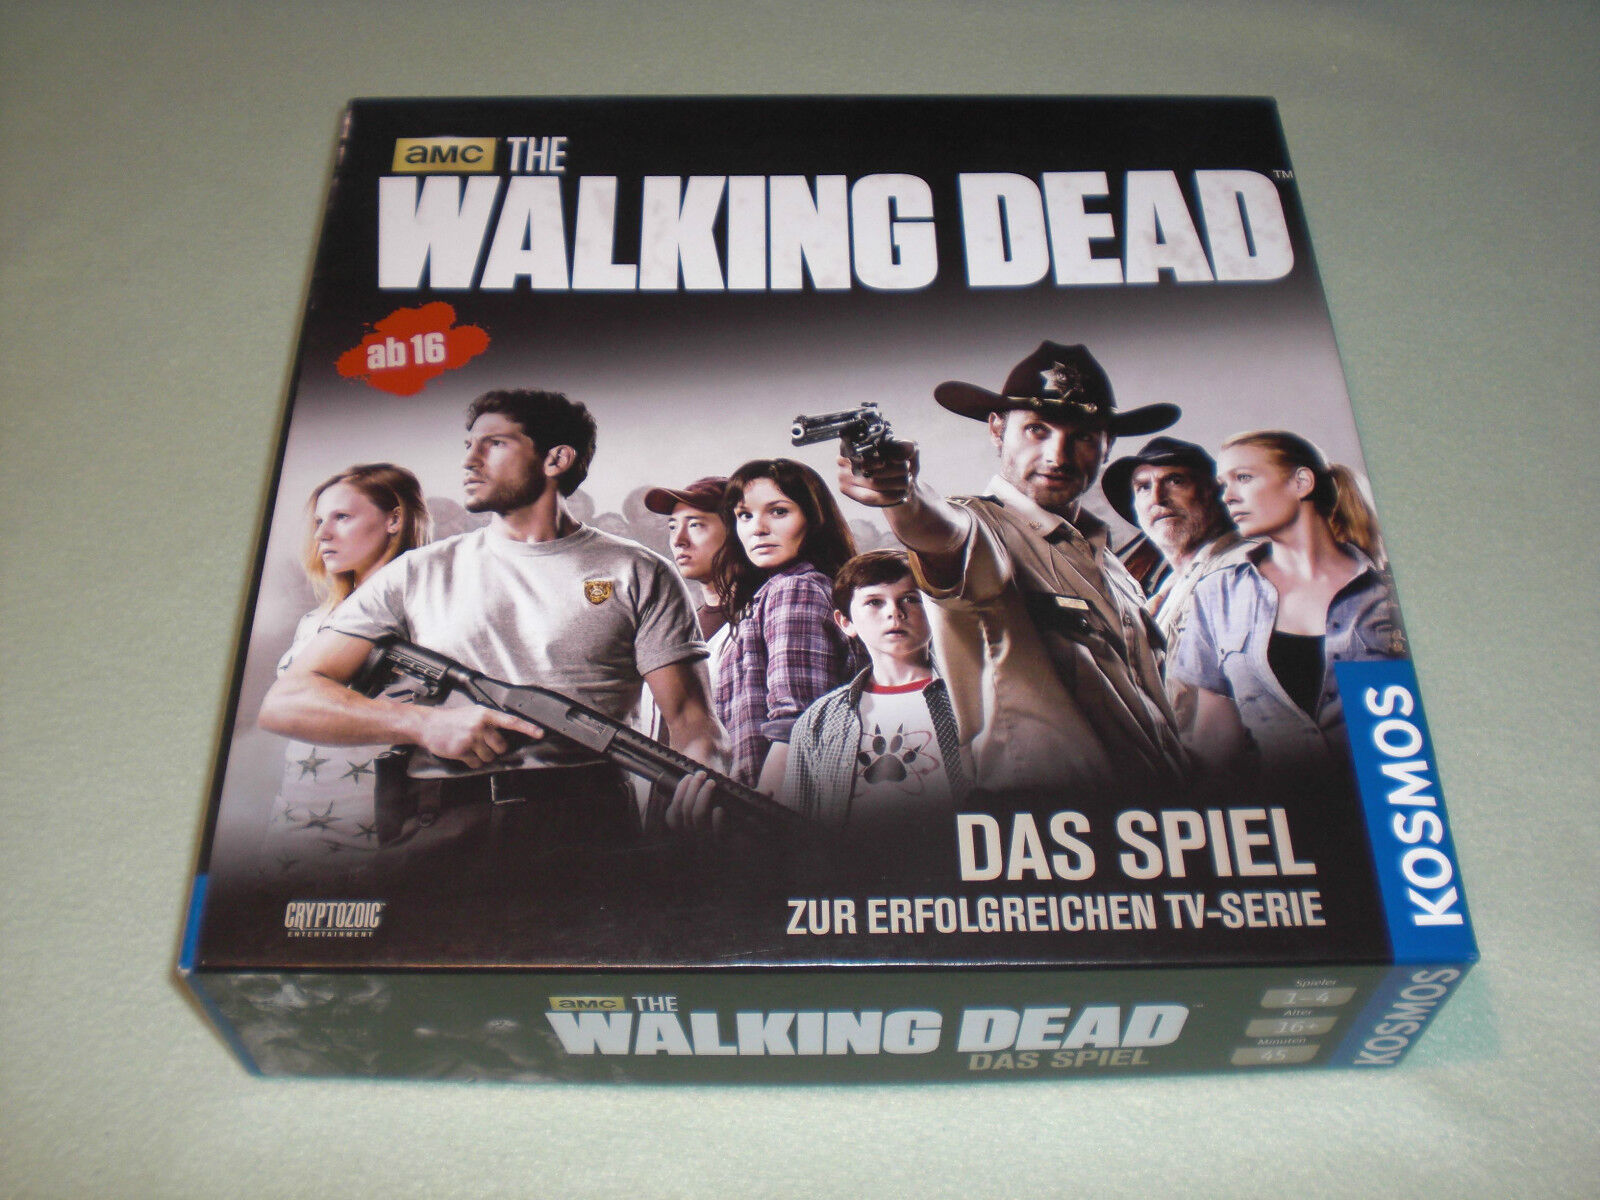 Amc The Walking Dead - Das Spiel - Kosmos Brettspiel - Top